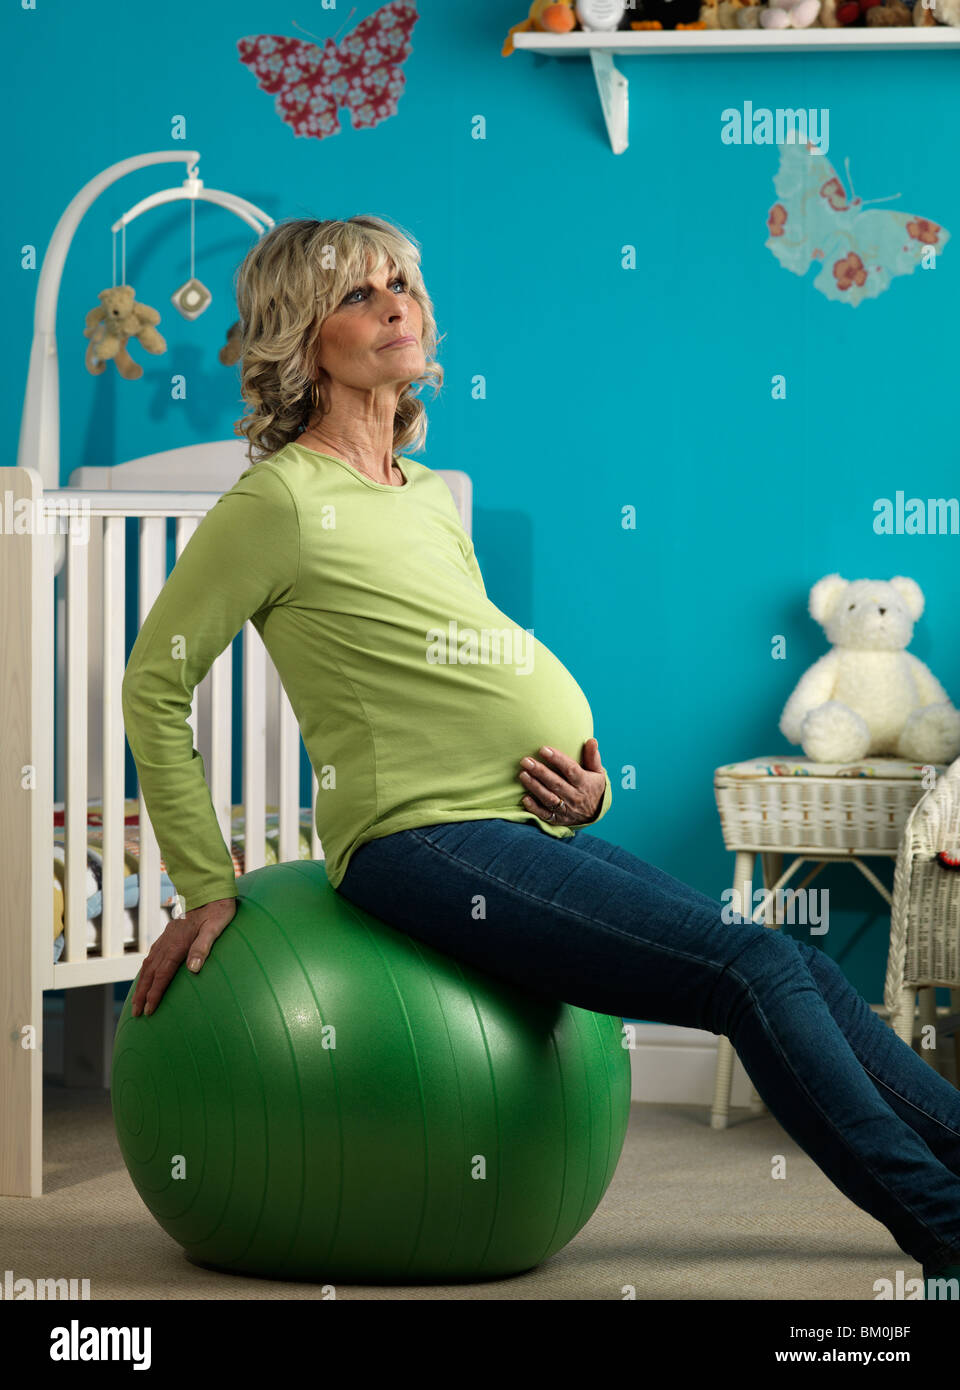 Pregnant older woman exercising - Stock Image